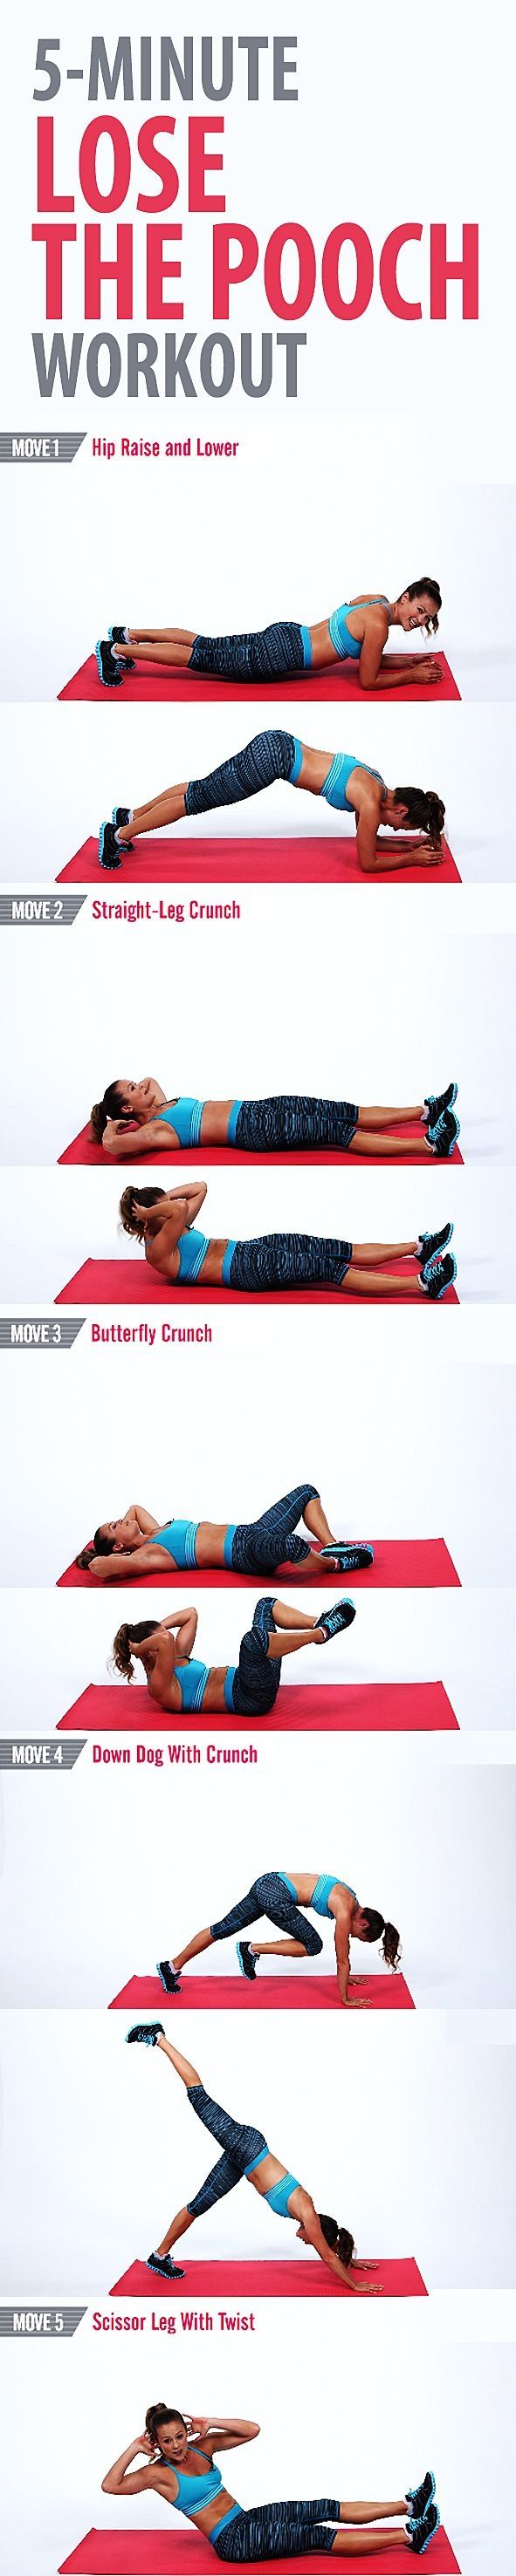 Try this quick and focused workout to tone the lower part of your abs and work off the pooch. We concentrate on the abs for five minutes and guarantee you feel the burn. You don't need any equipment, but don't forget to breathe! #weightlosstips